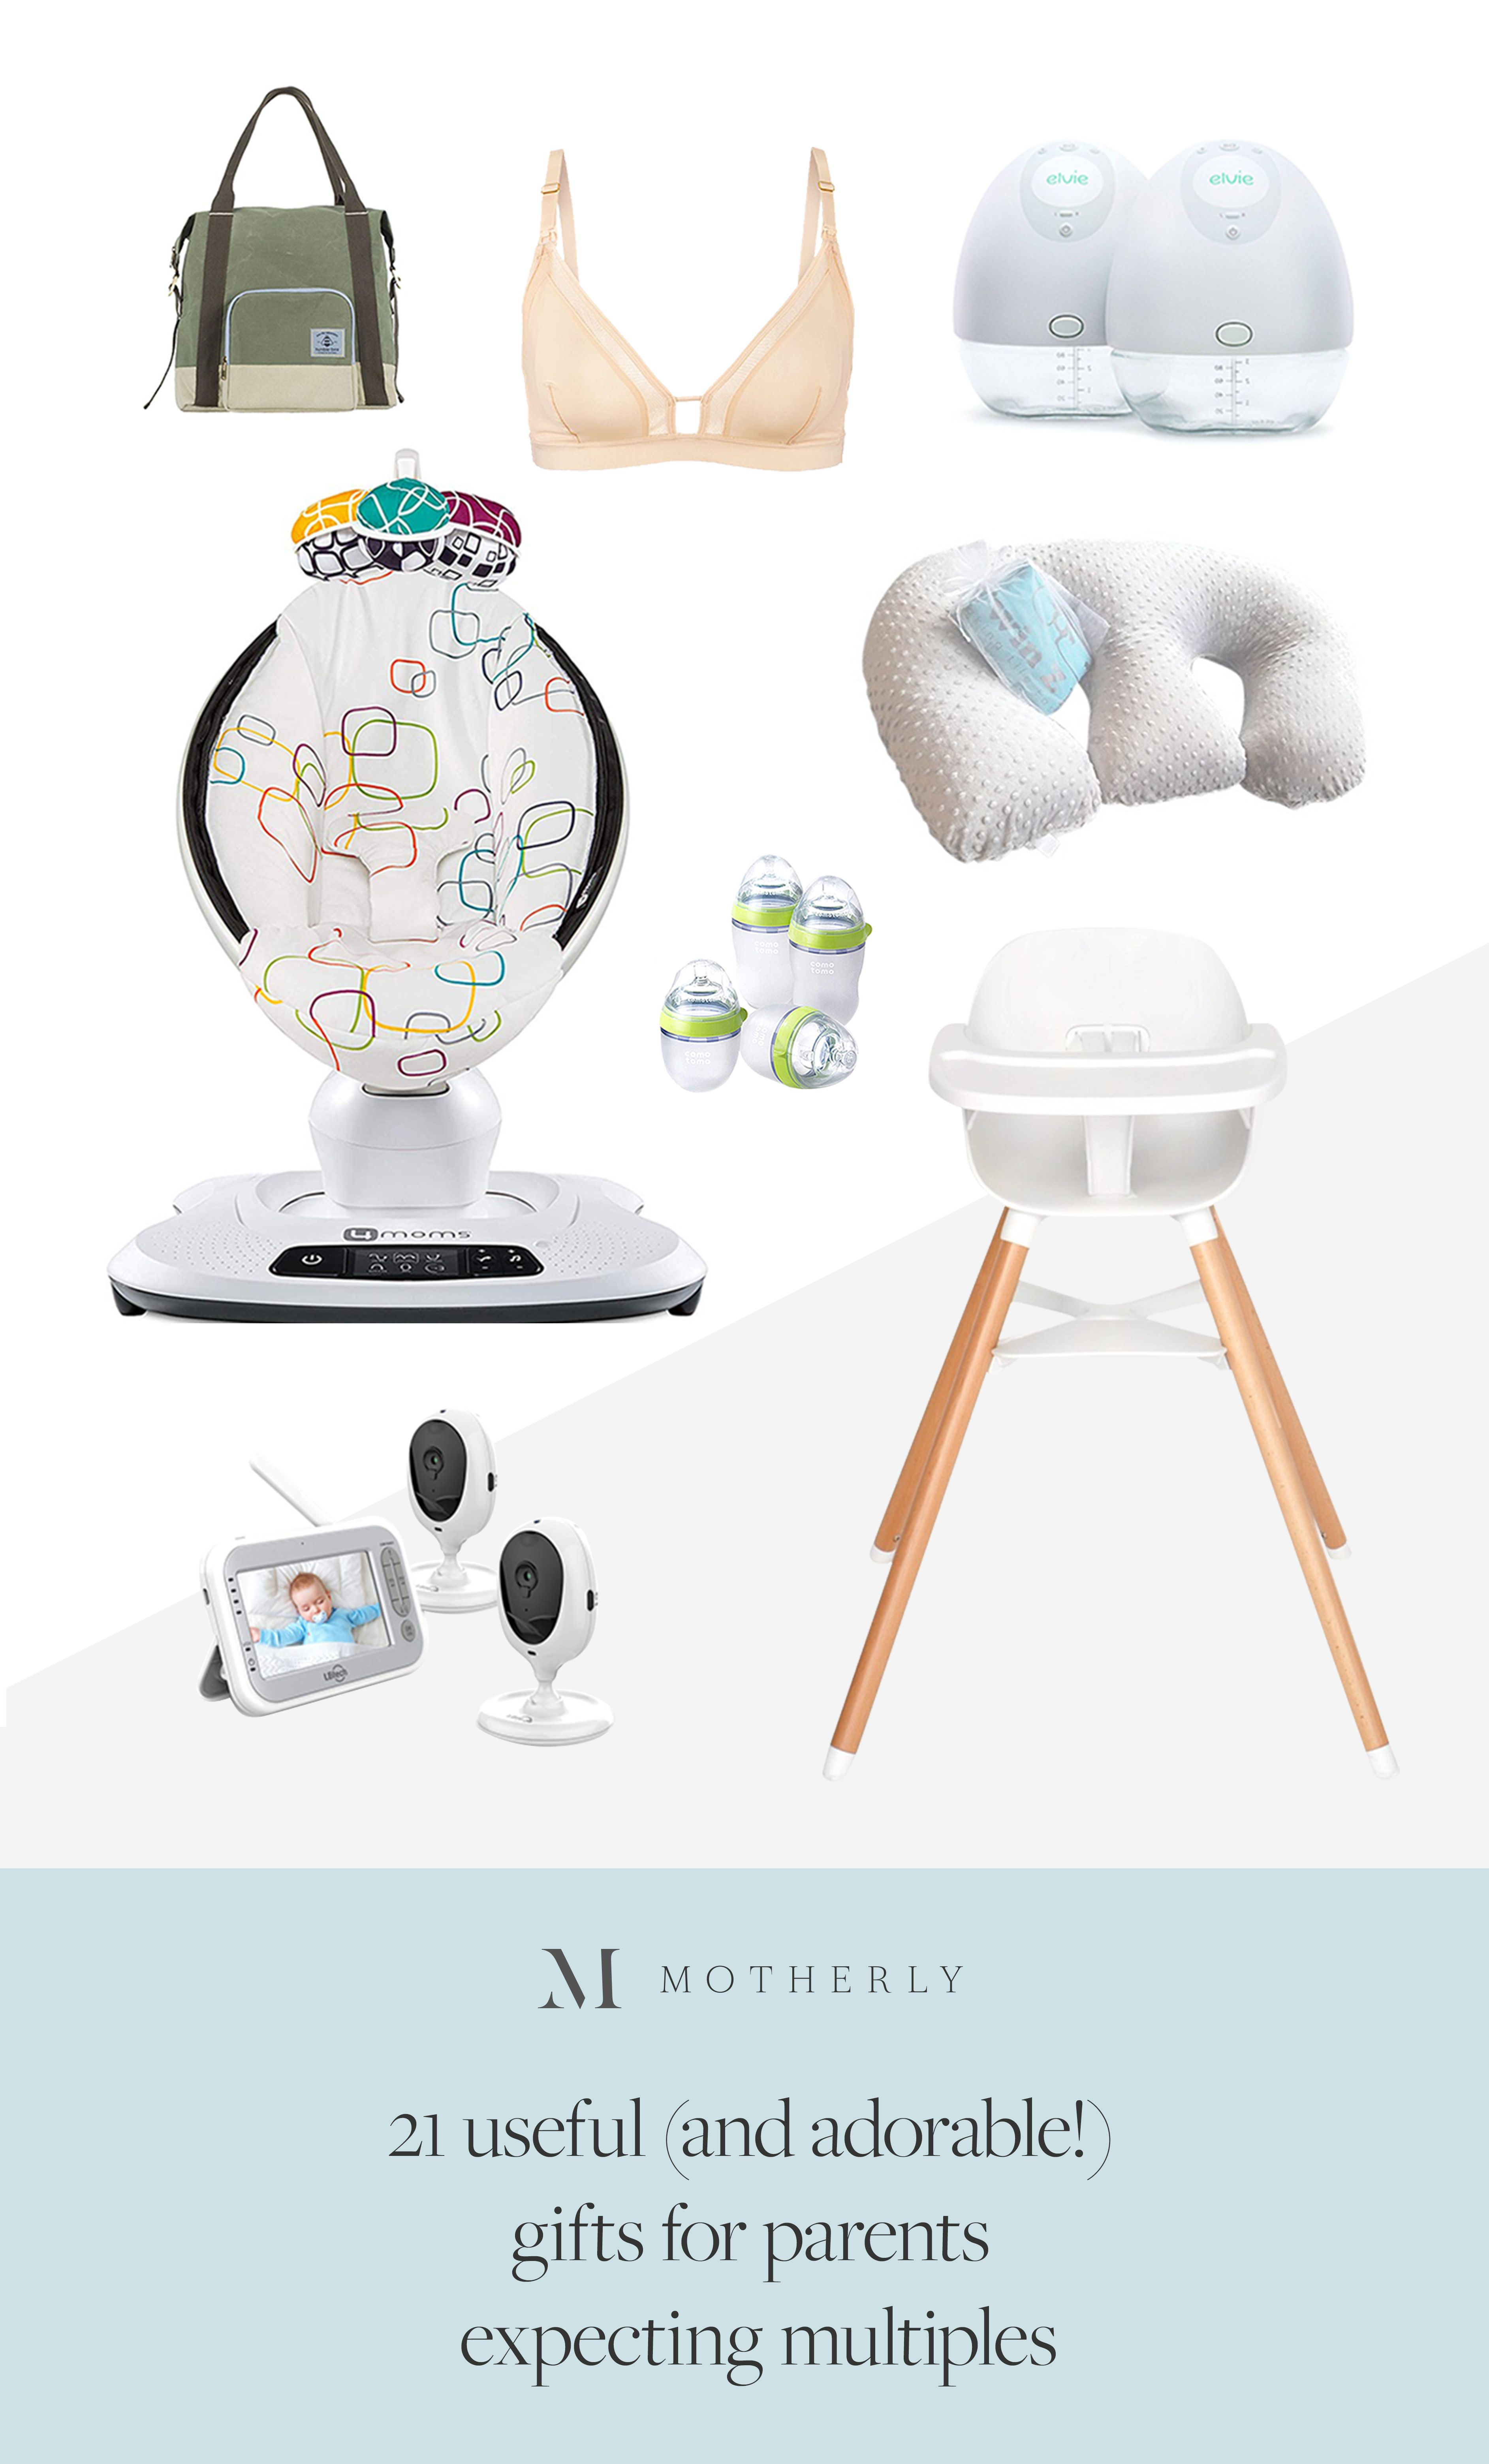 21 useful and adorable gifts for parents expecting